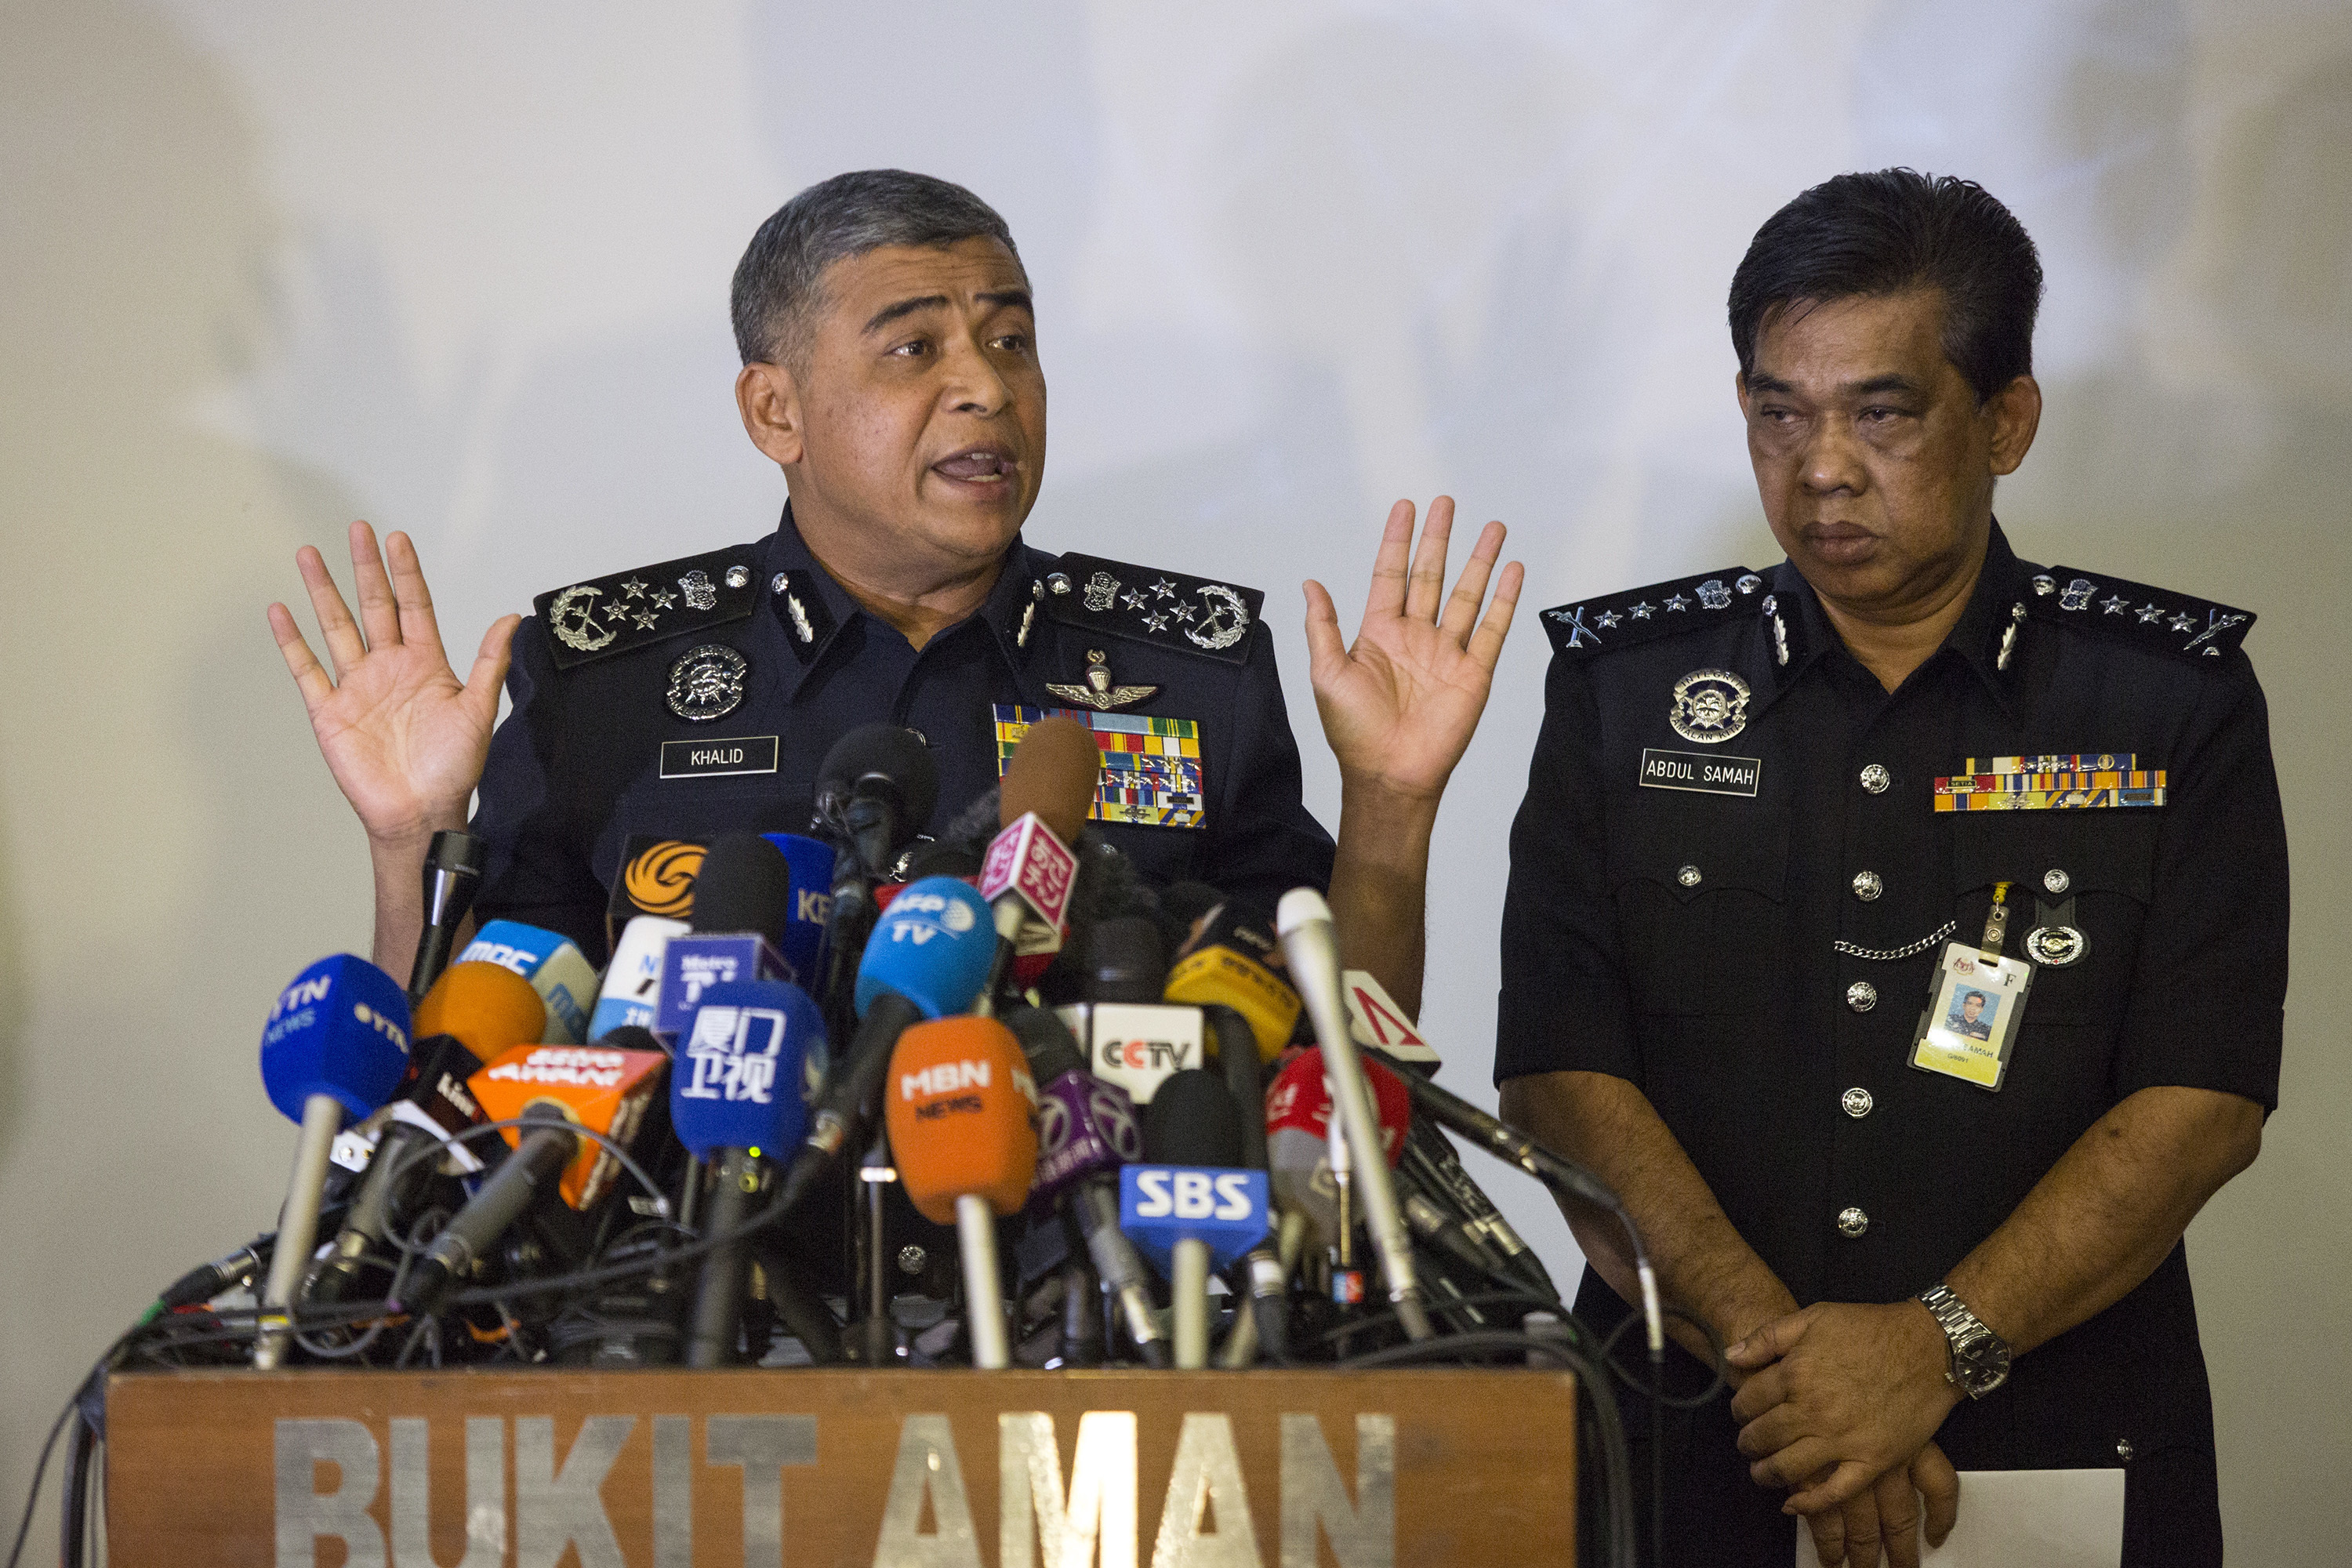 Malaysia's Inspector-General of Police Khalid Abu Bakar (L) and Selangor Police Chief Abdul Samah Mat during a press conference at the Bukit Aman national police headquarters in Kuala Lumpur, Malaysia on Feb. 22, 2017. (AP Photo/Alexandra Radu)